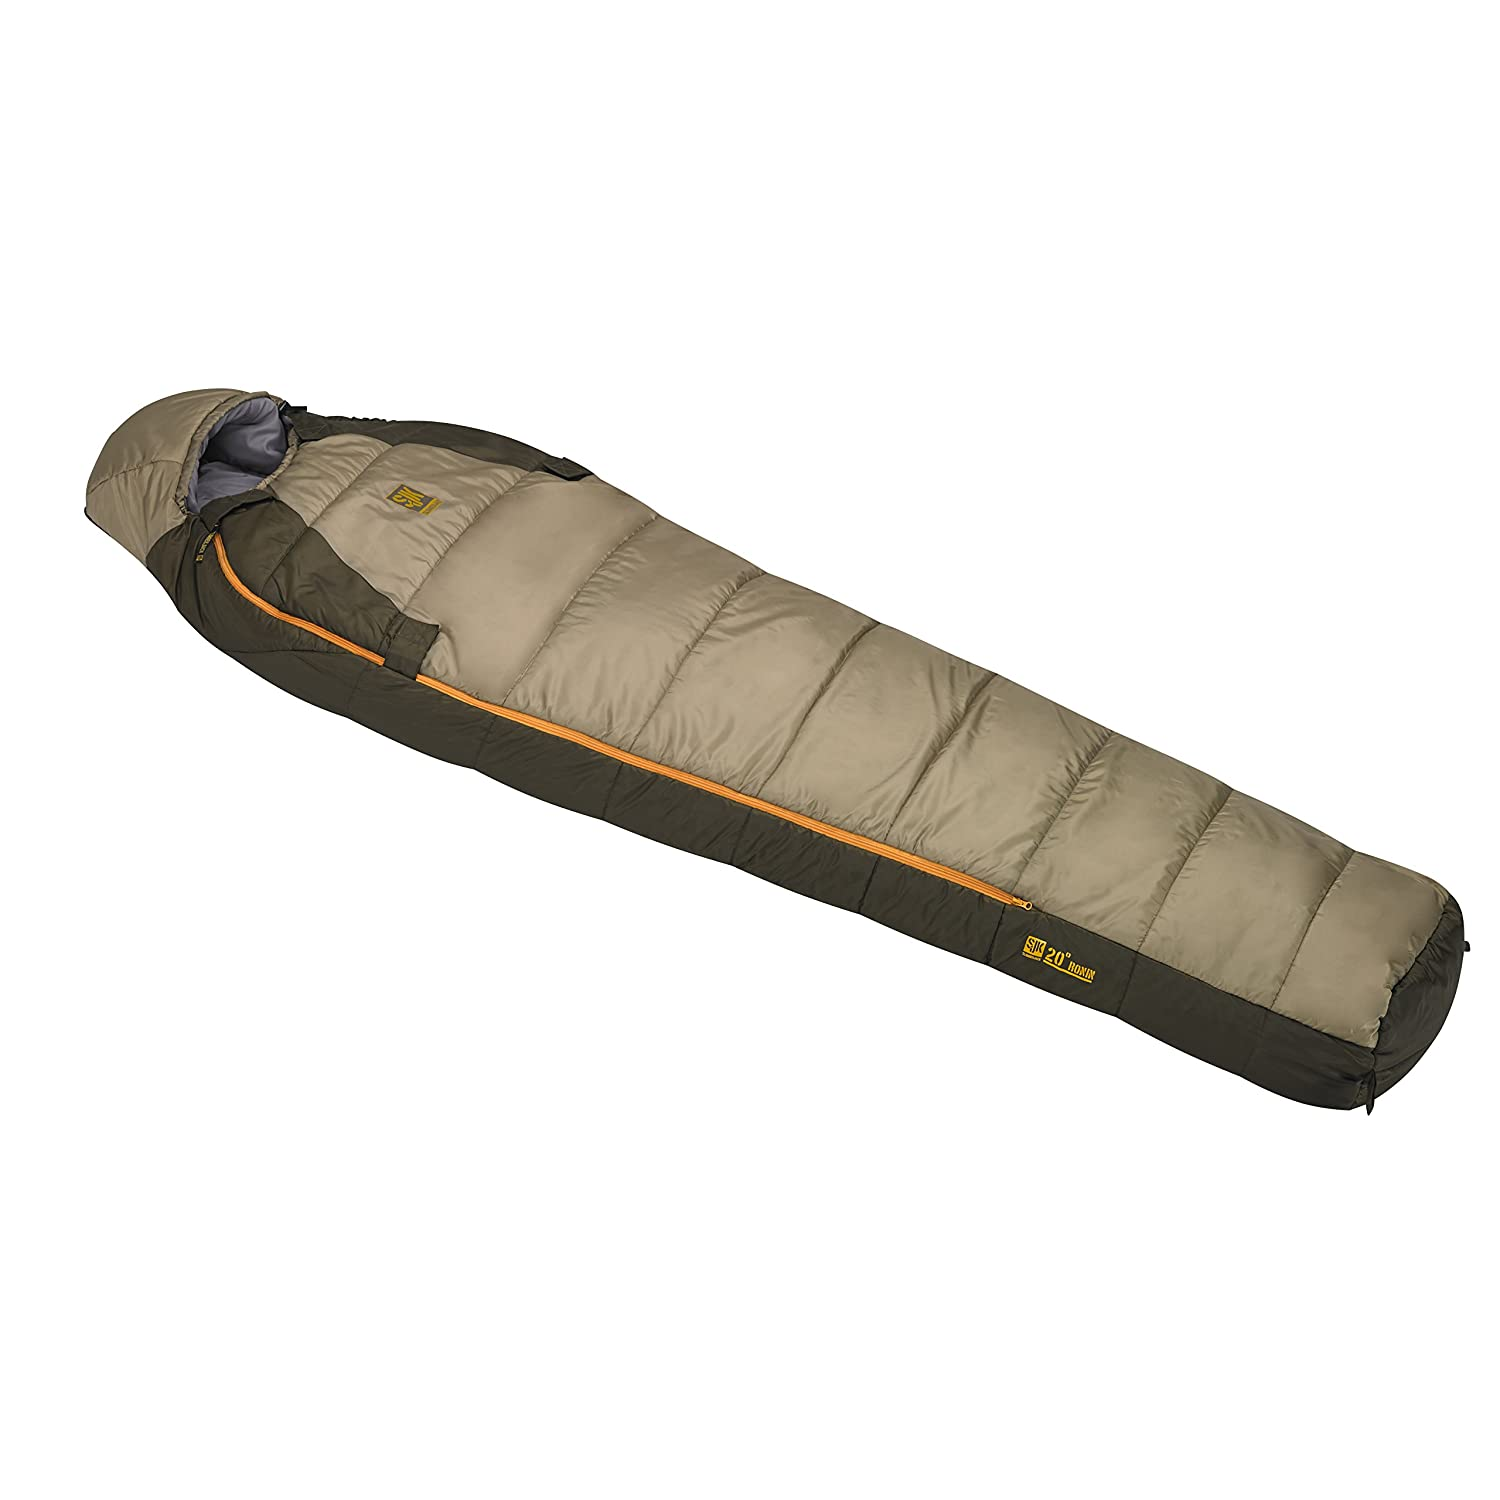 51722415DZ Slumberjack SJK Ronin 20-Degree Sleeping Bag Tan Sportsman Supply Inc